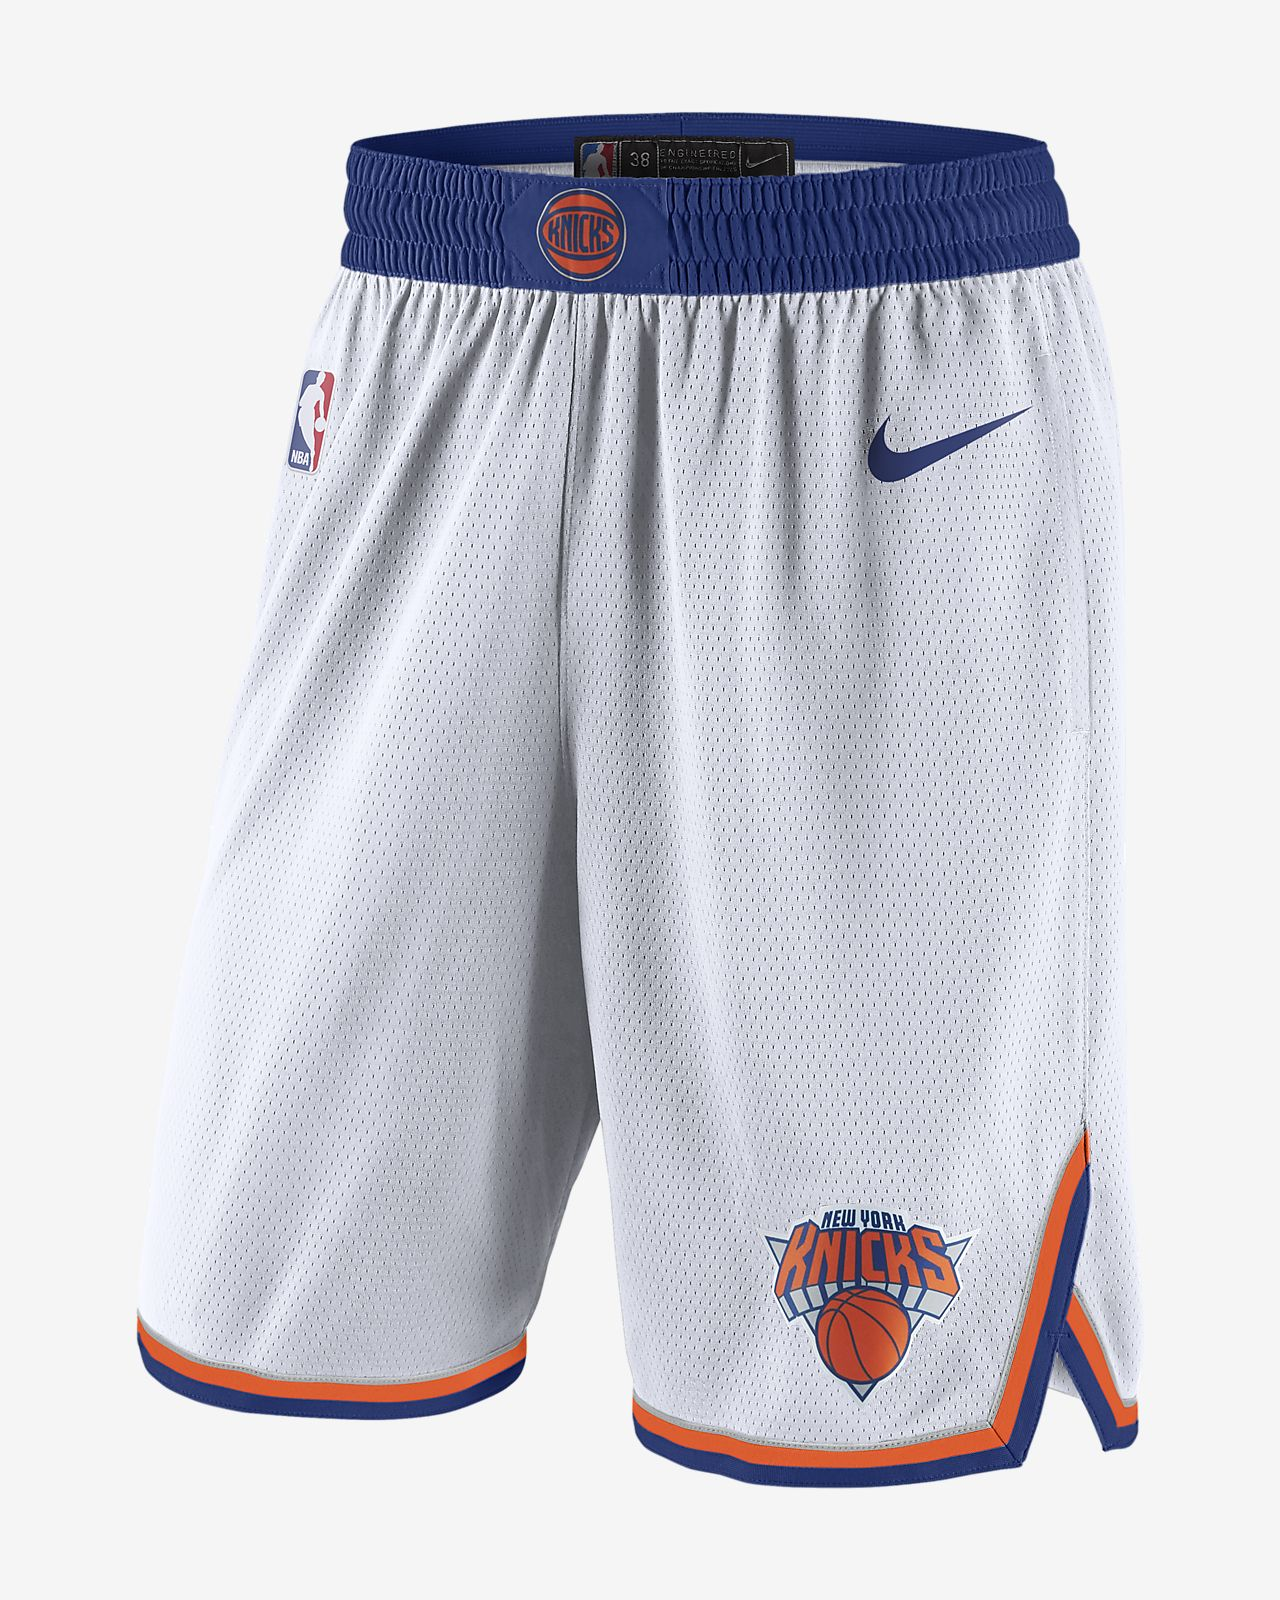 New York Knicks Association Edition Swingman Men's Nike NBA Shorts